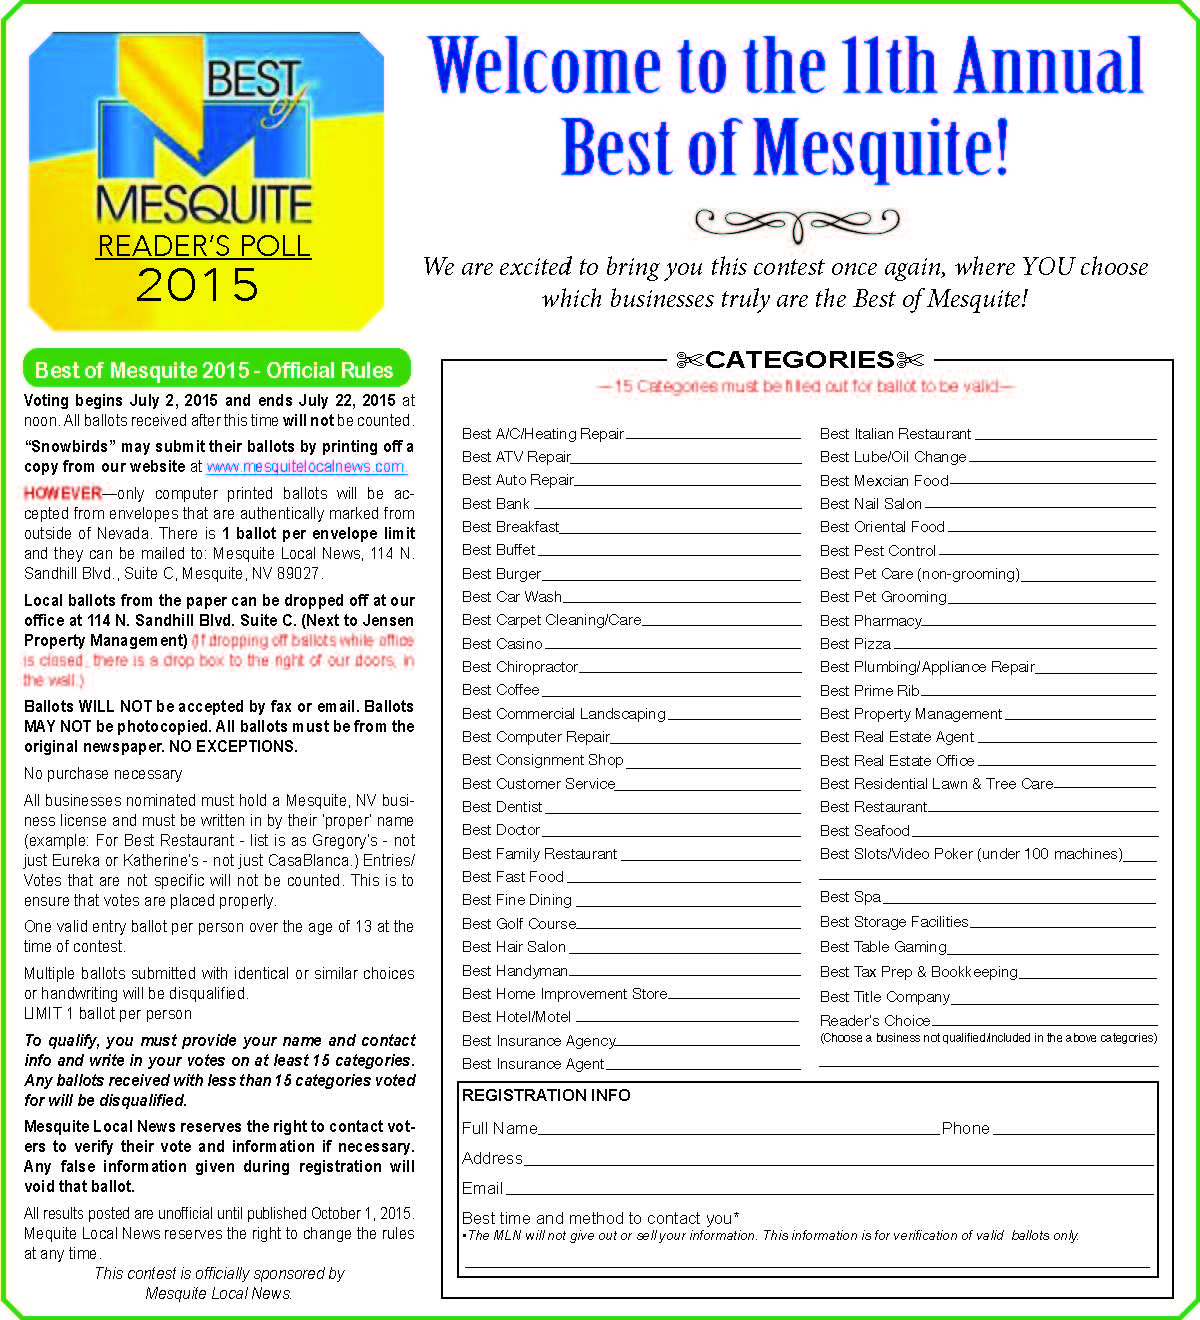 Best of Mesquite 2015 Ballot